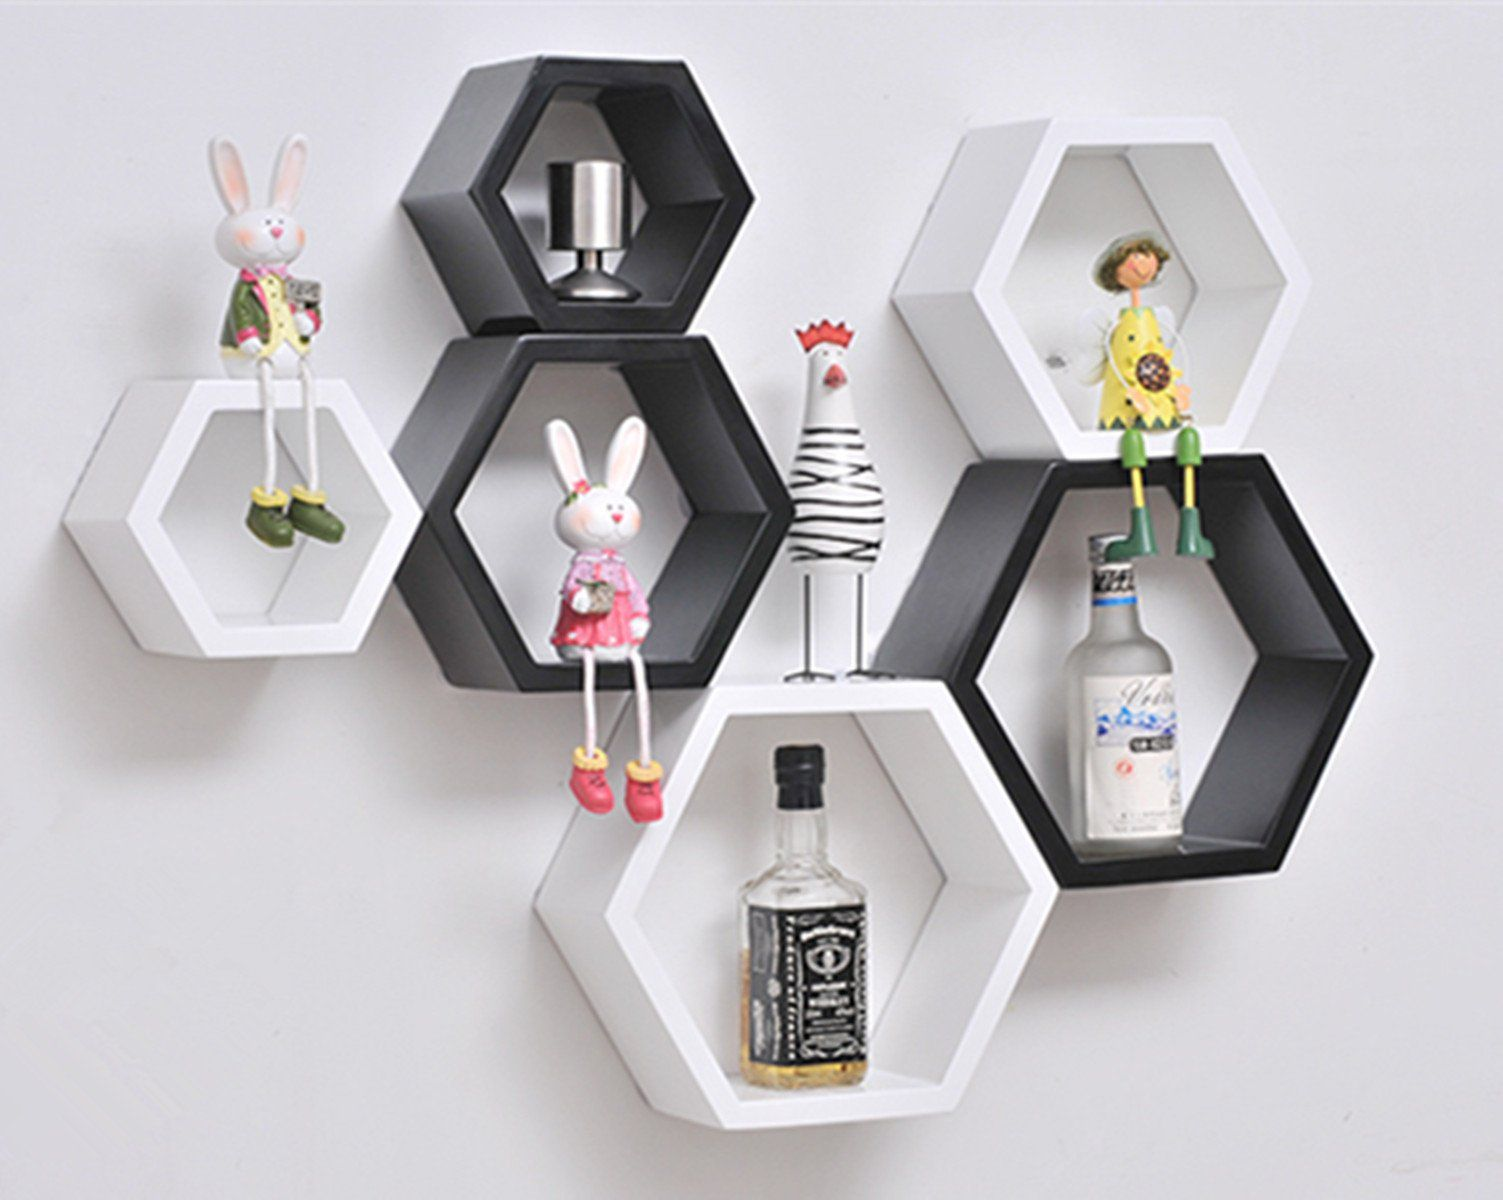 Living Room Ornaments zjchao diy decorative wall ornaments floating shelves cube storage